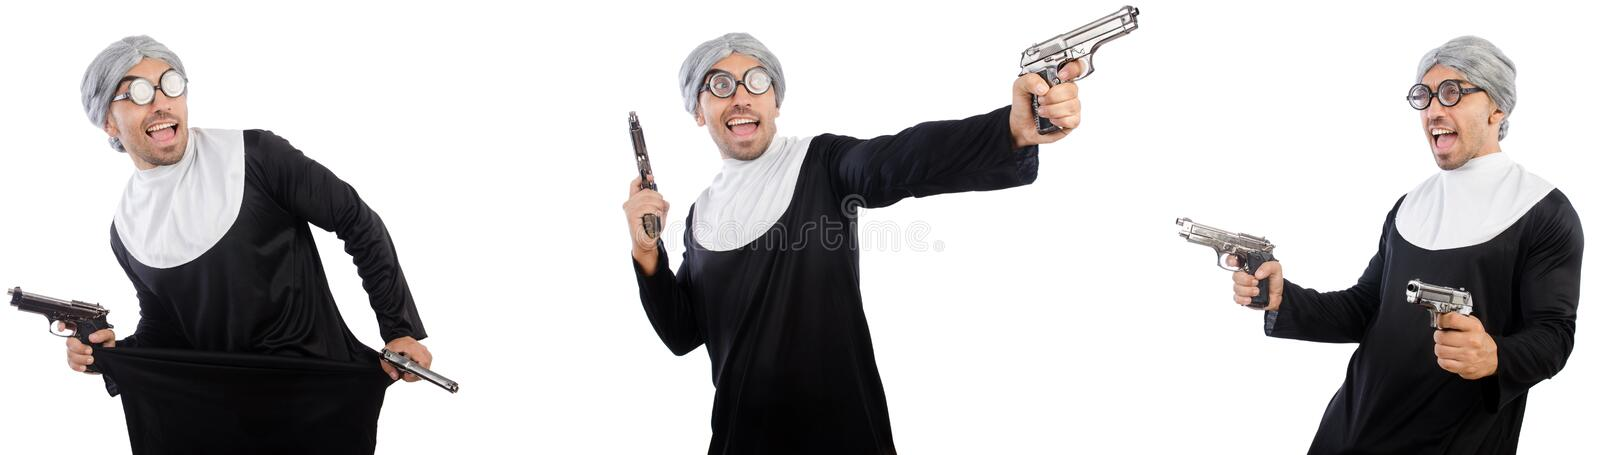 The man in nun dress with handgun. Man in nun dress with handgun royalty free stock images